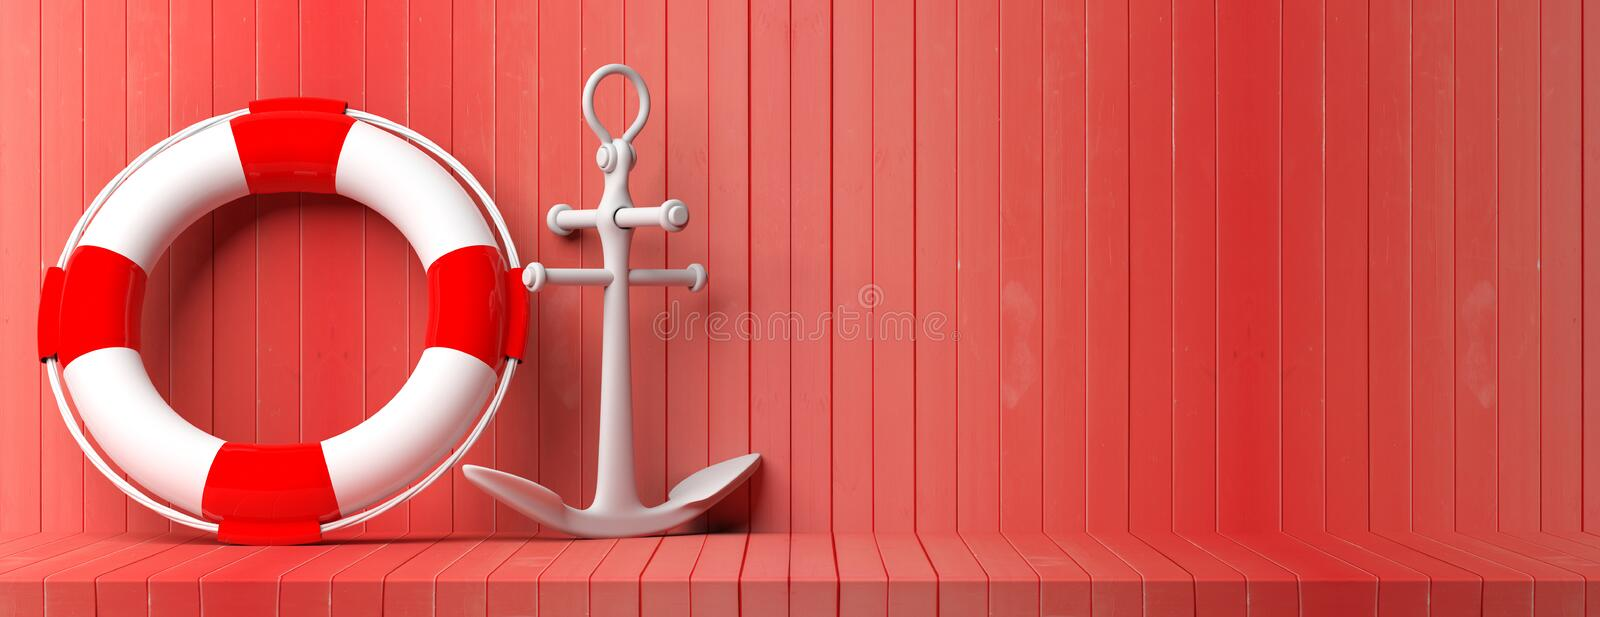 Ship anchor and life buoy on red wooden floor and wall background, banner, copy space. 3d illustration royalty free illustration